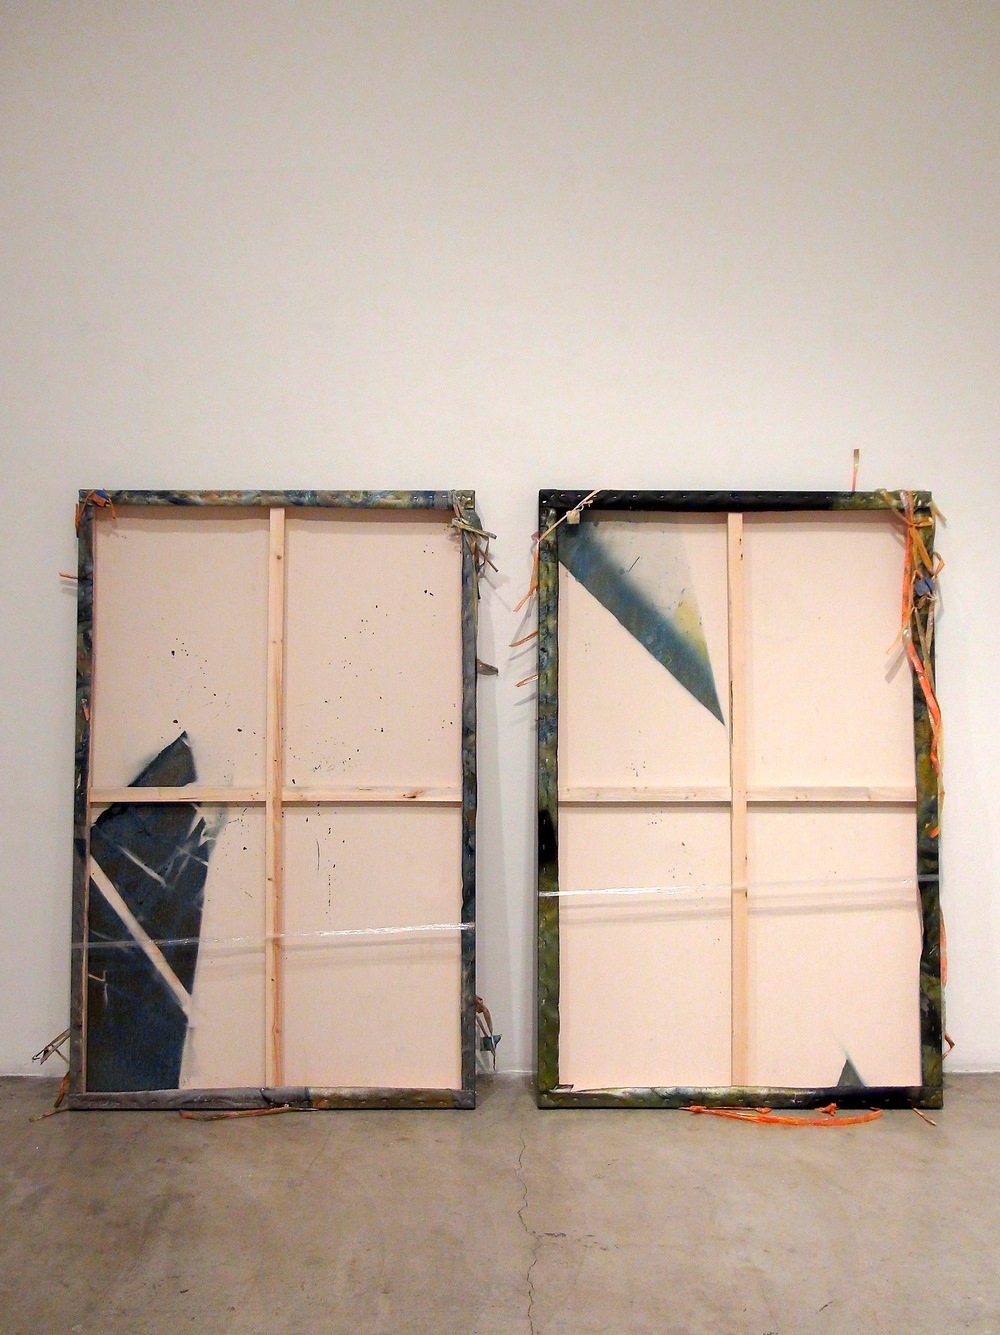 IAIN MUIRHEAD   1611-1612  , 2016. Airborne pigment, acrylic binder, 10oz cotton duck canvas, gesso, linear low density polyethylene (LLDPE), nylon monofilament, melamine, milled pine, 3mm staples, 16 gauge pneumatic nails. Diptych 65 x 41 inches each, 7 inches apart, wall leaning and away 10 inches at floor.